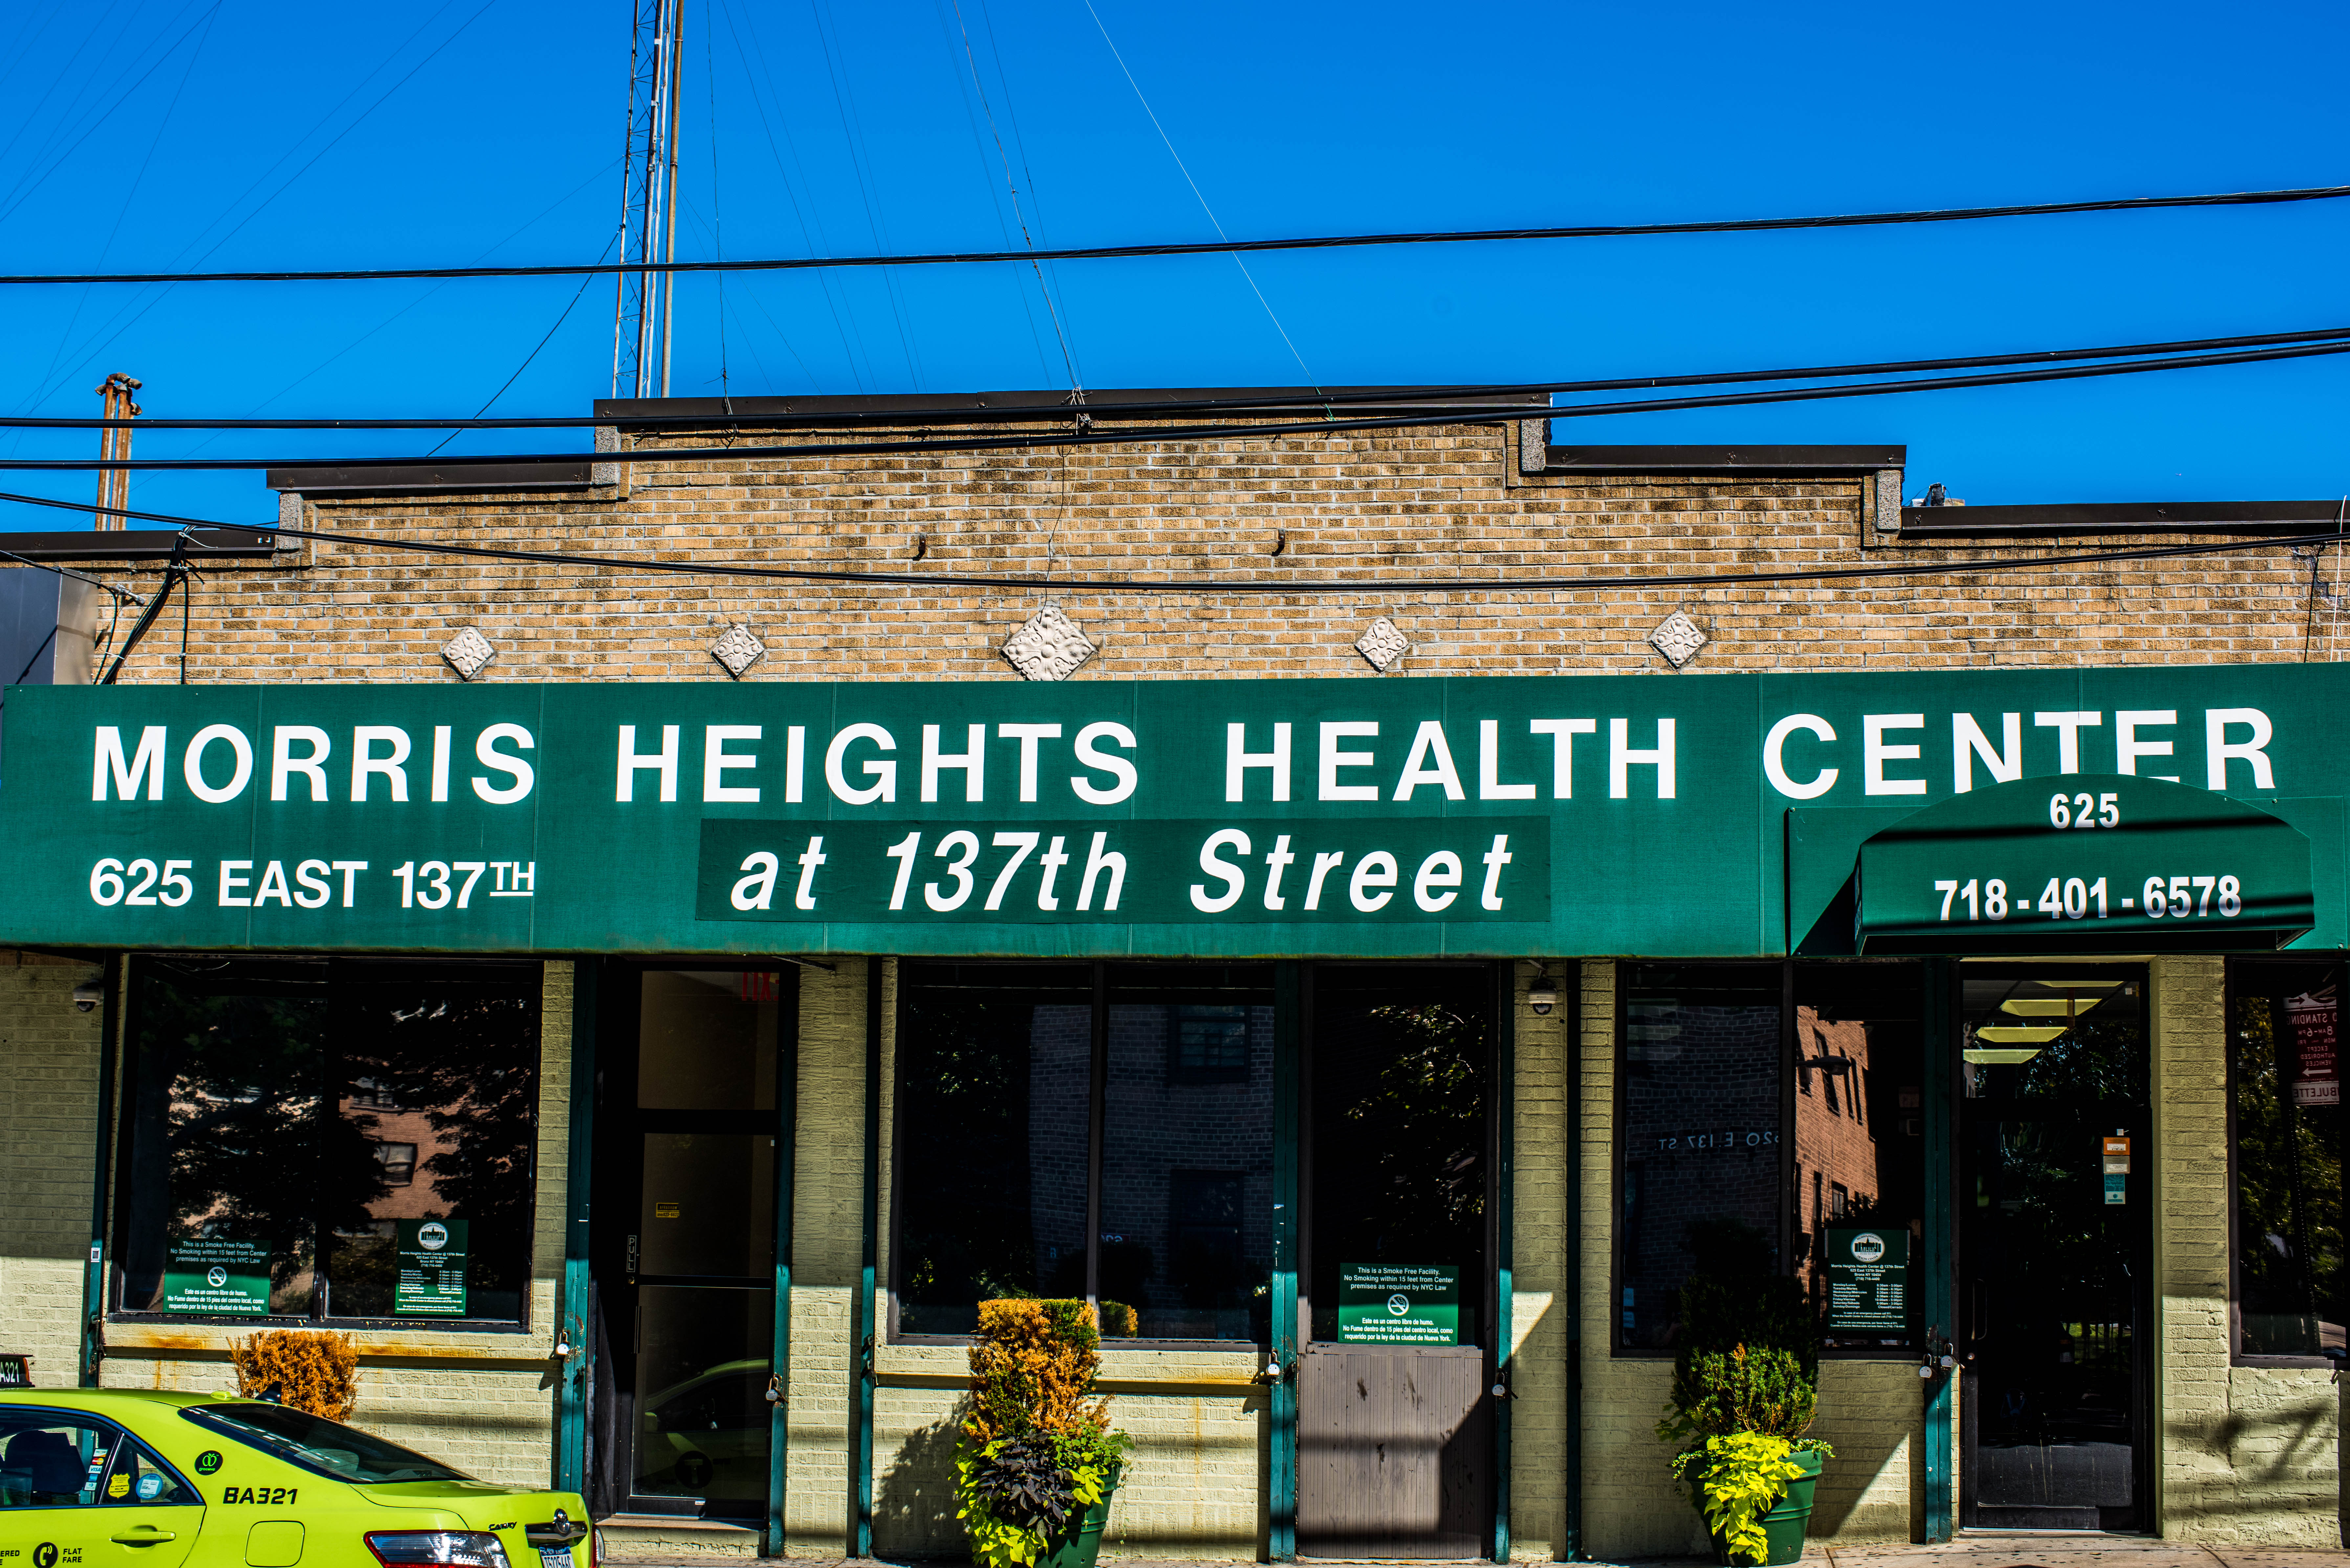 Mhhc At 137th Street Morris Heights Health Center